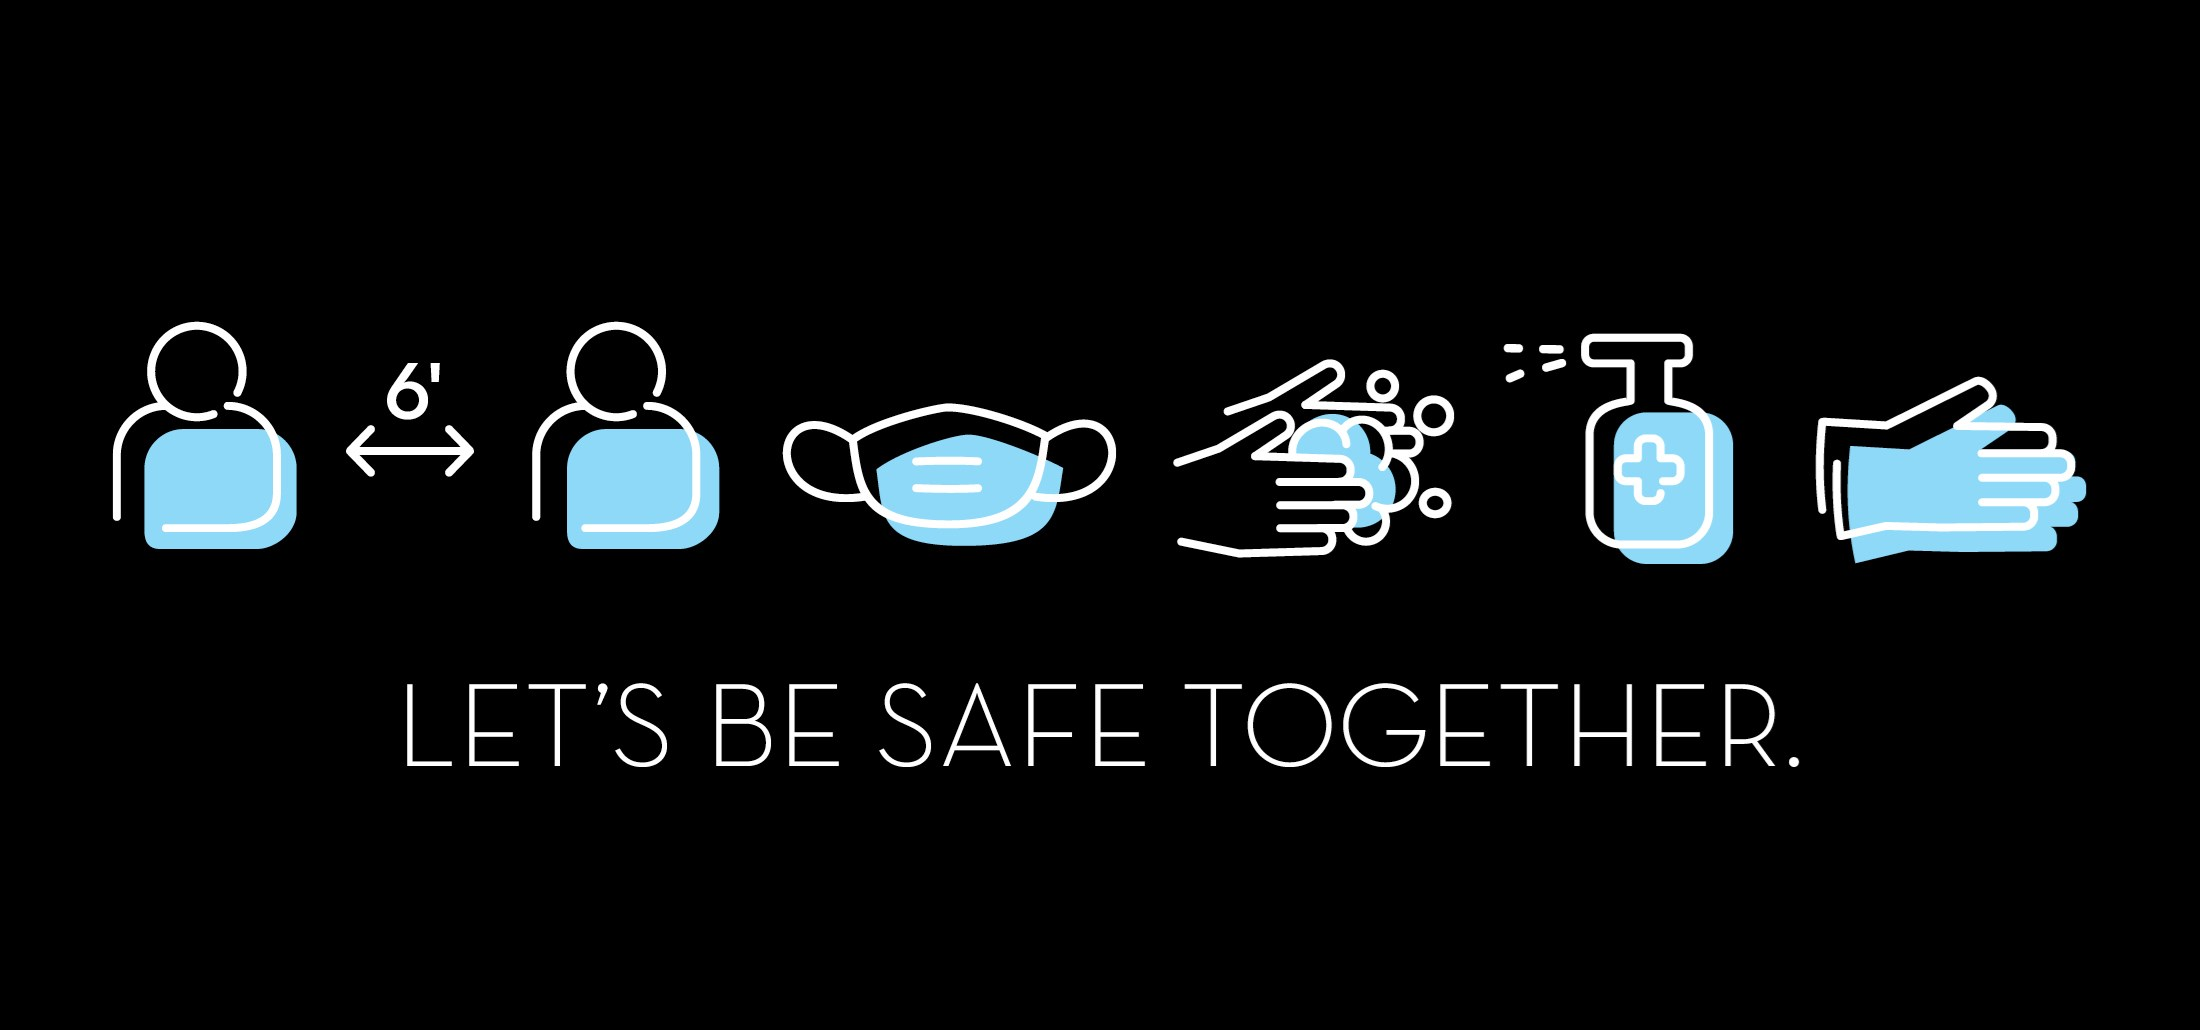 Safe Together